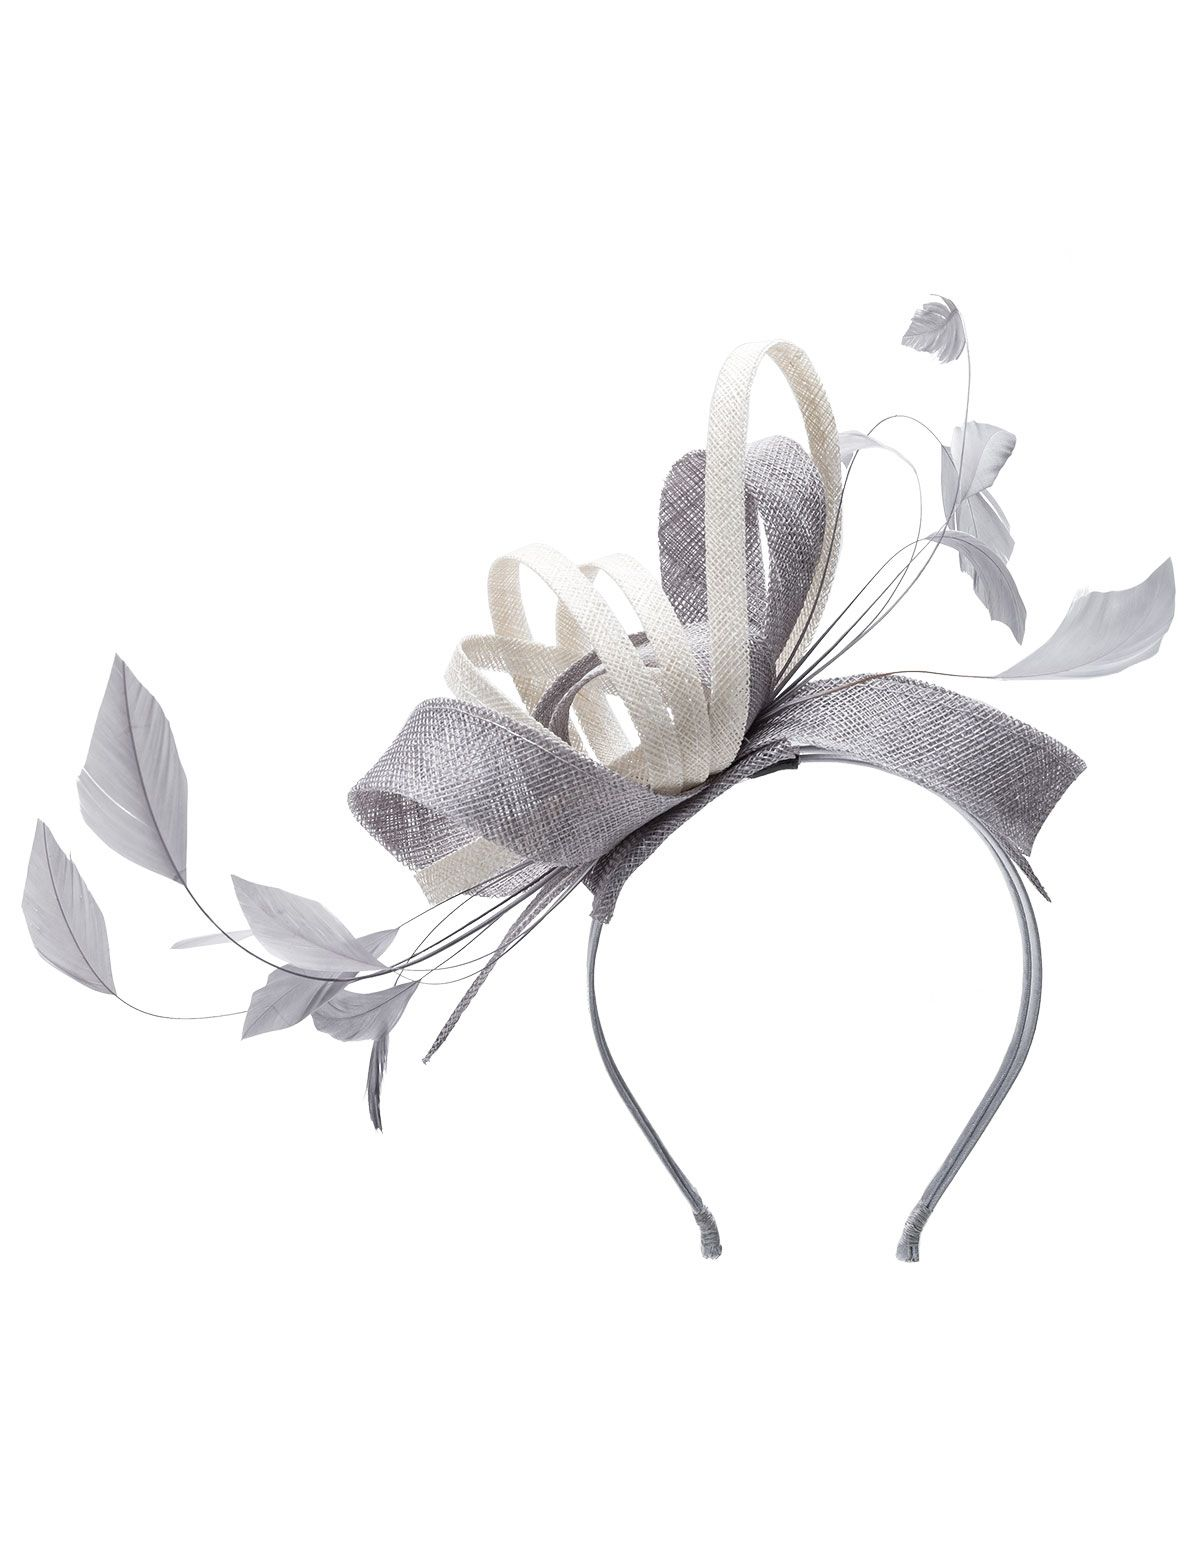 Mascara Two tone feather fascinator in Silver   Ivory-White  a07f38a205e